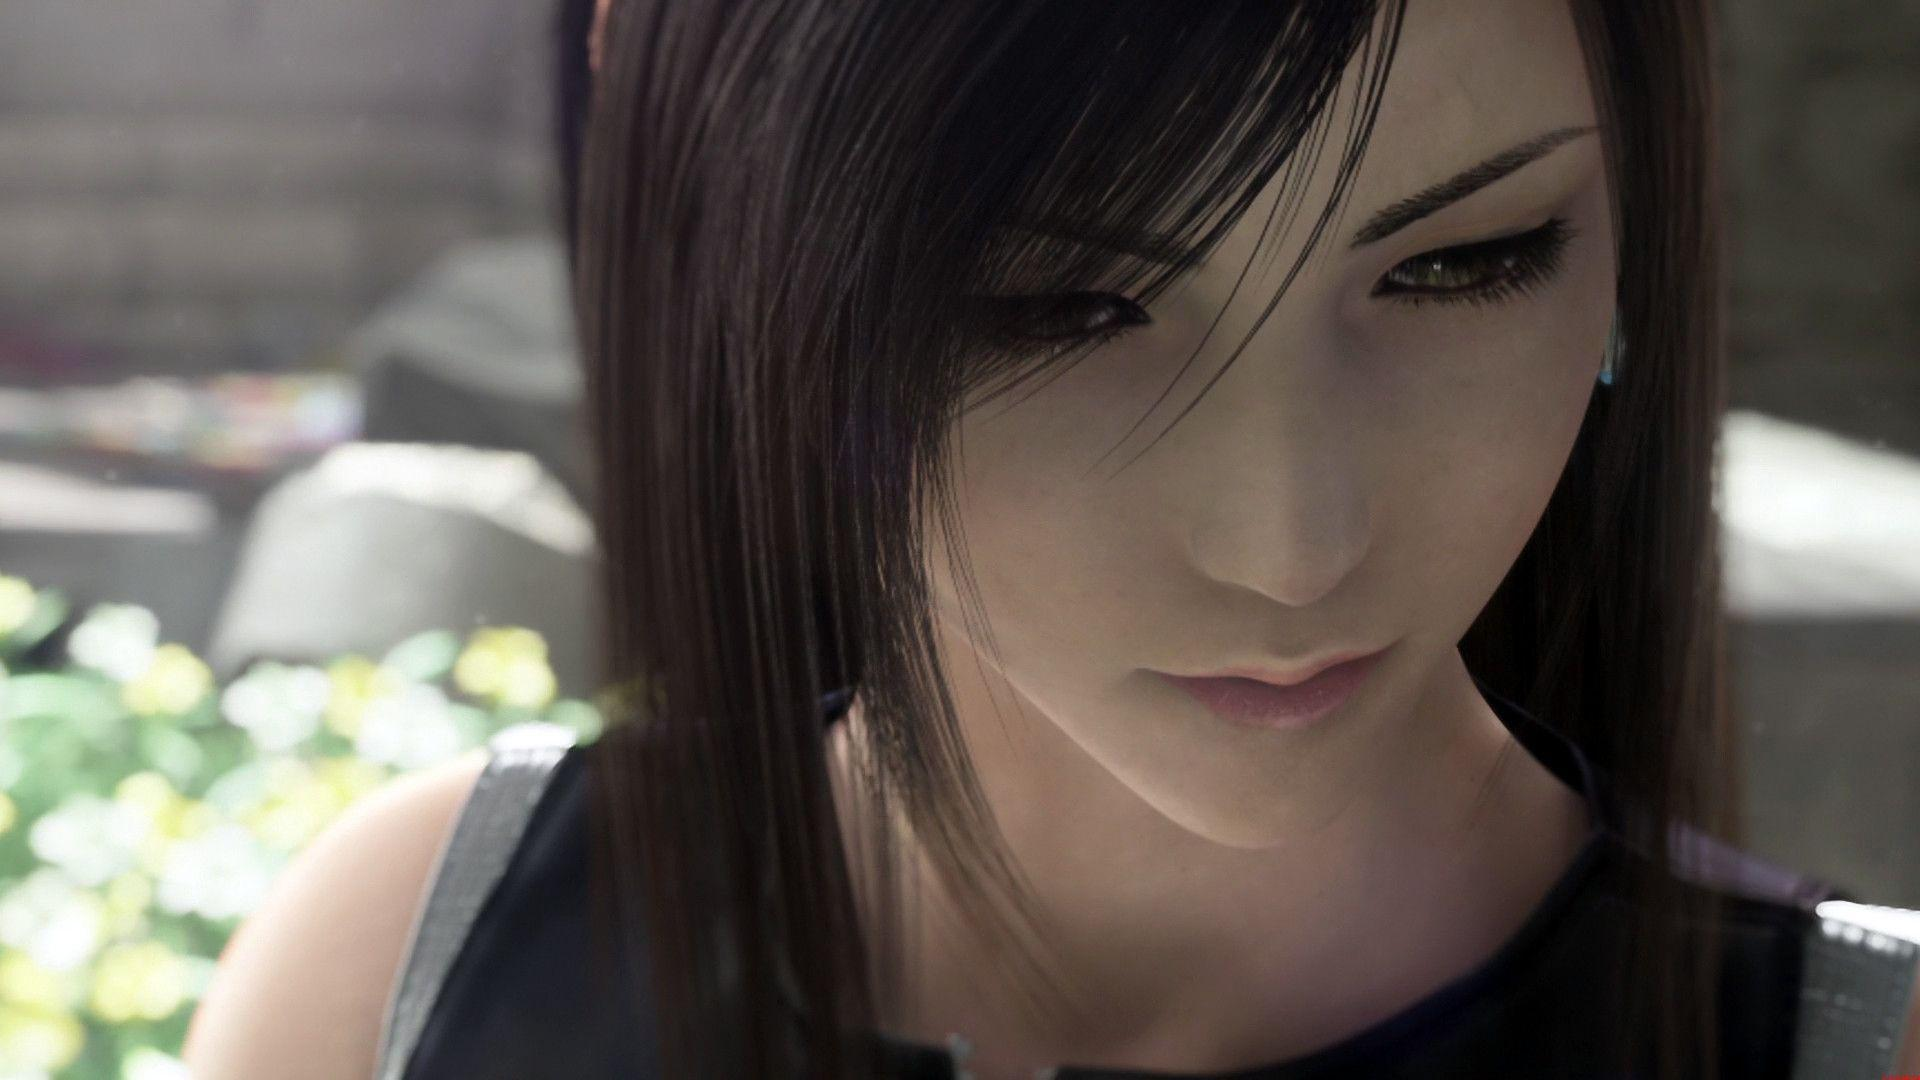 Wallpaper HD Tifa Final Fantasy 7